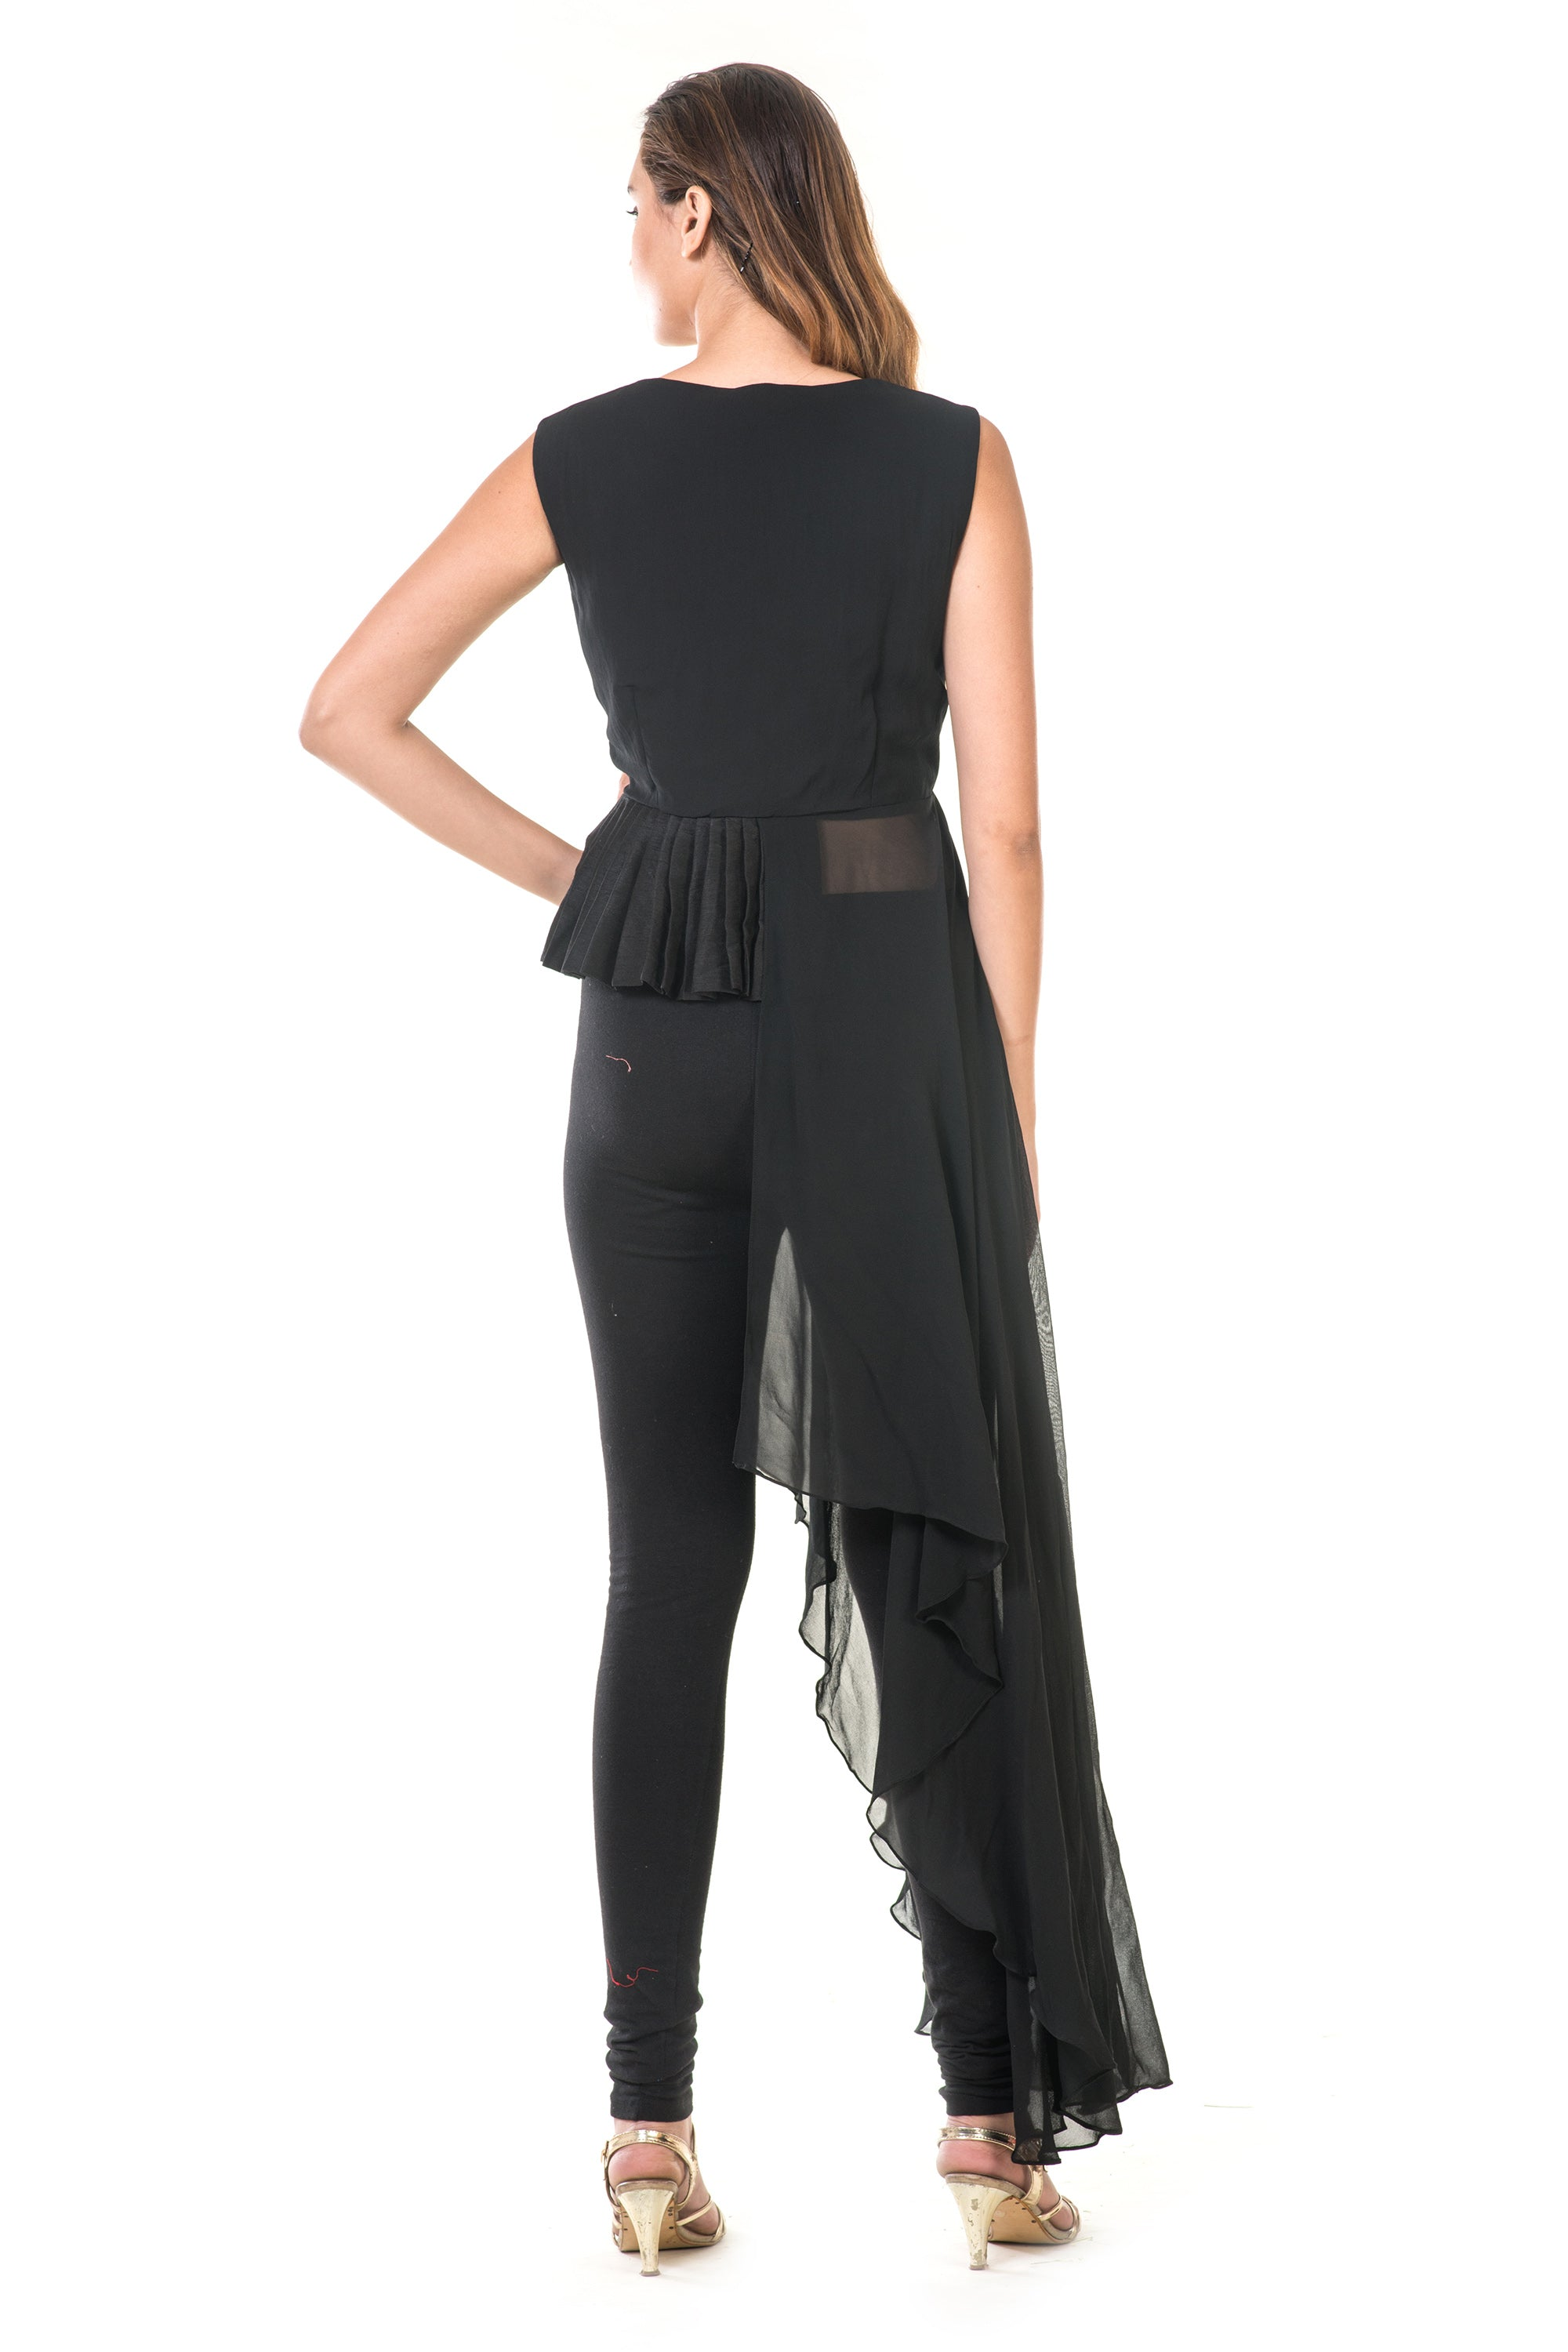 Black High Low Peplum Pleated Top BACK